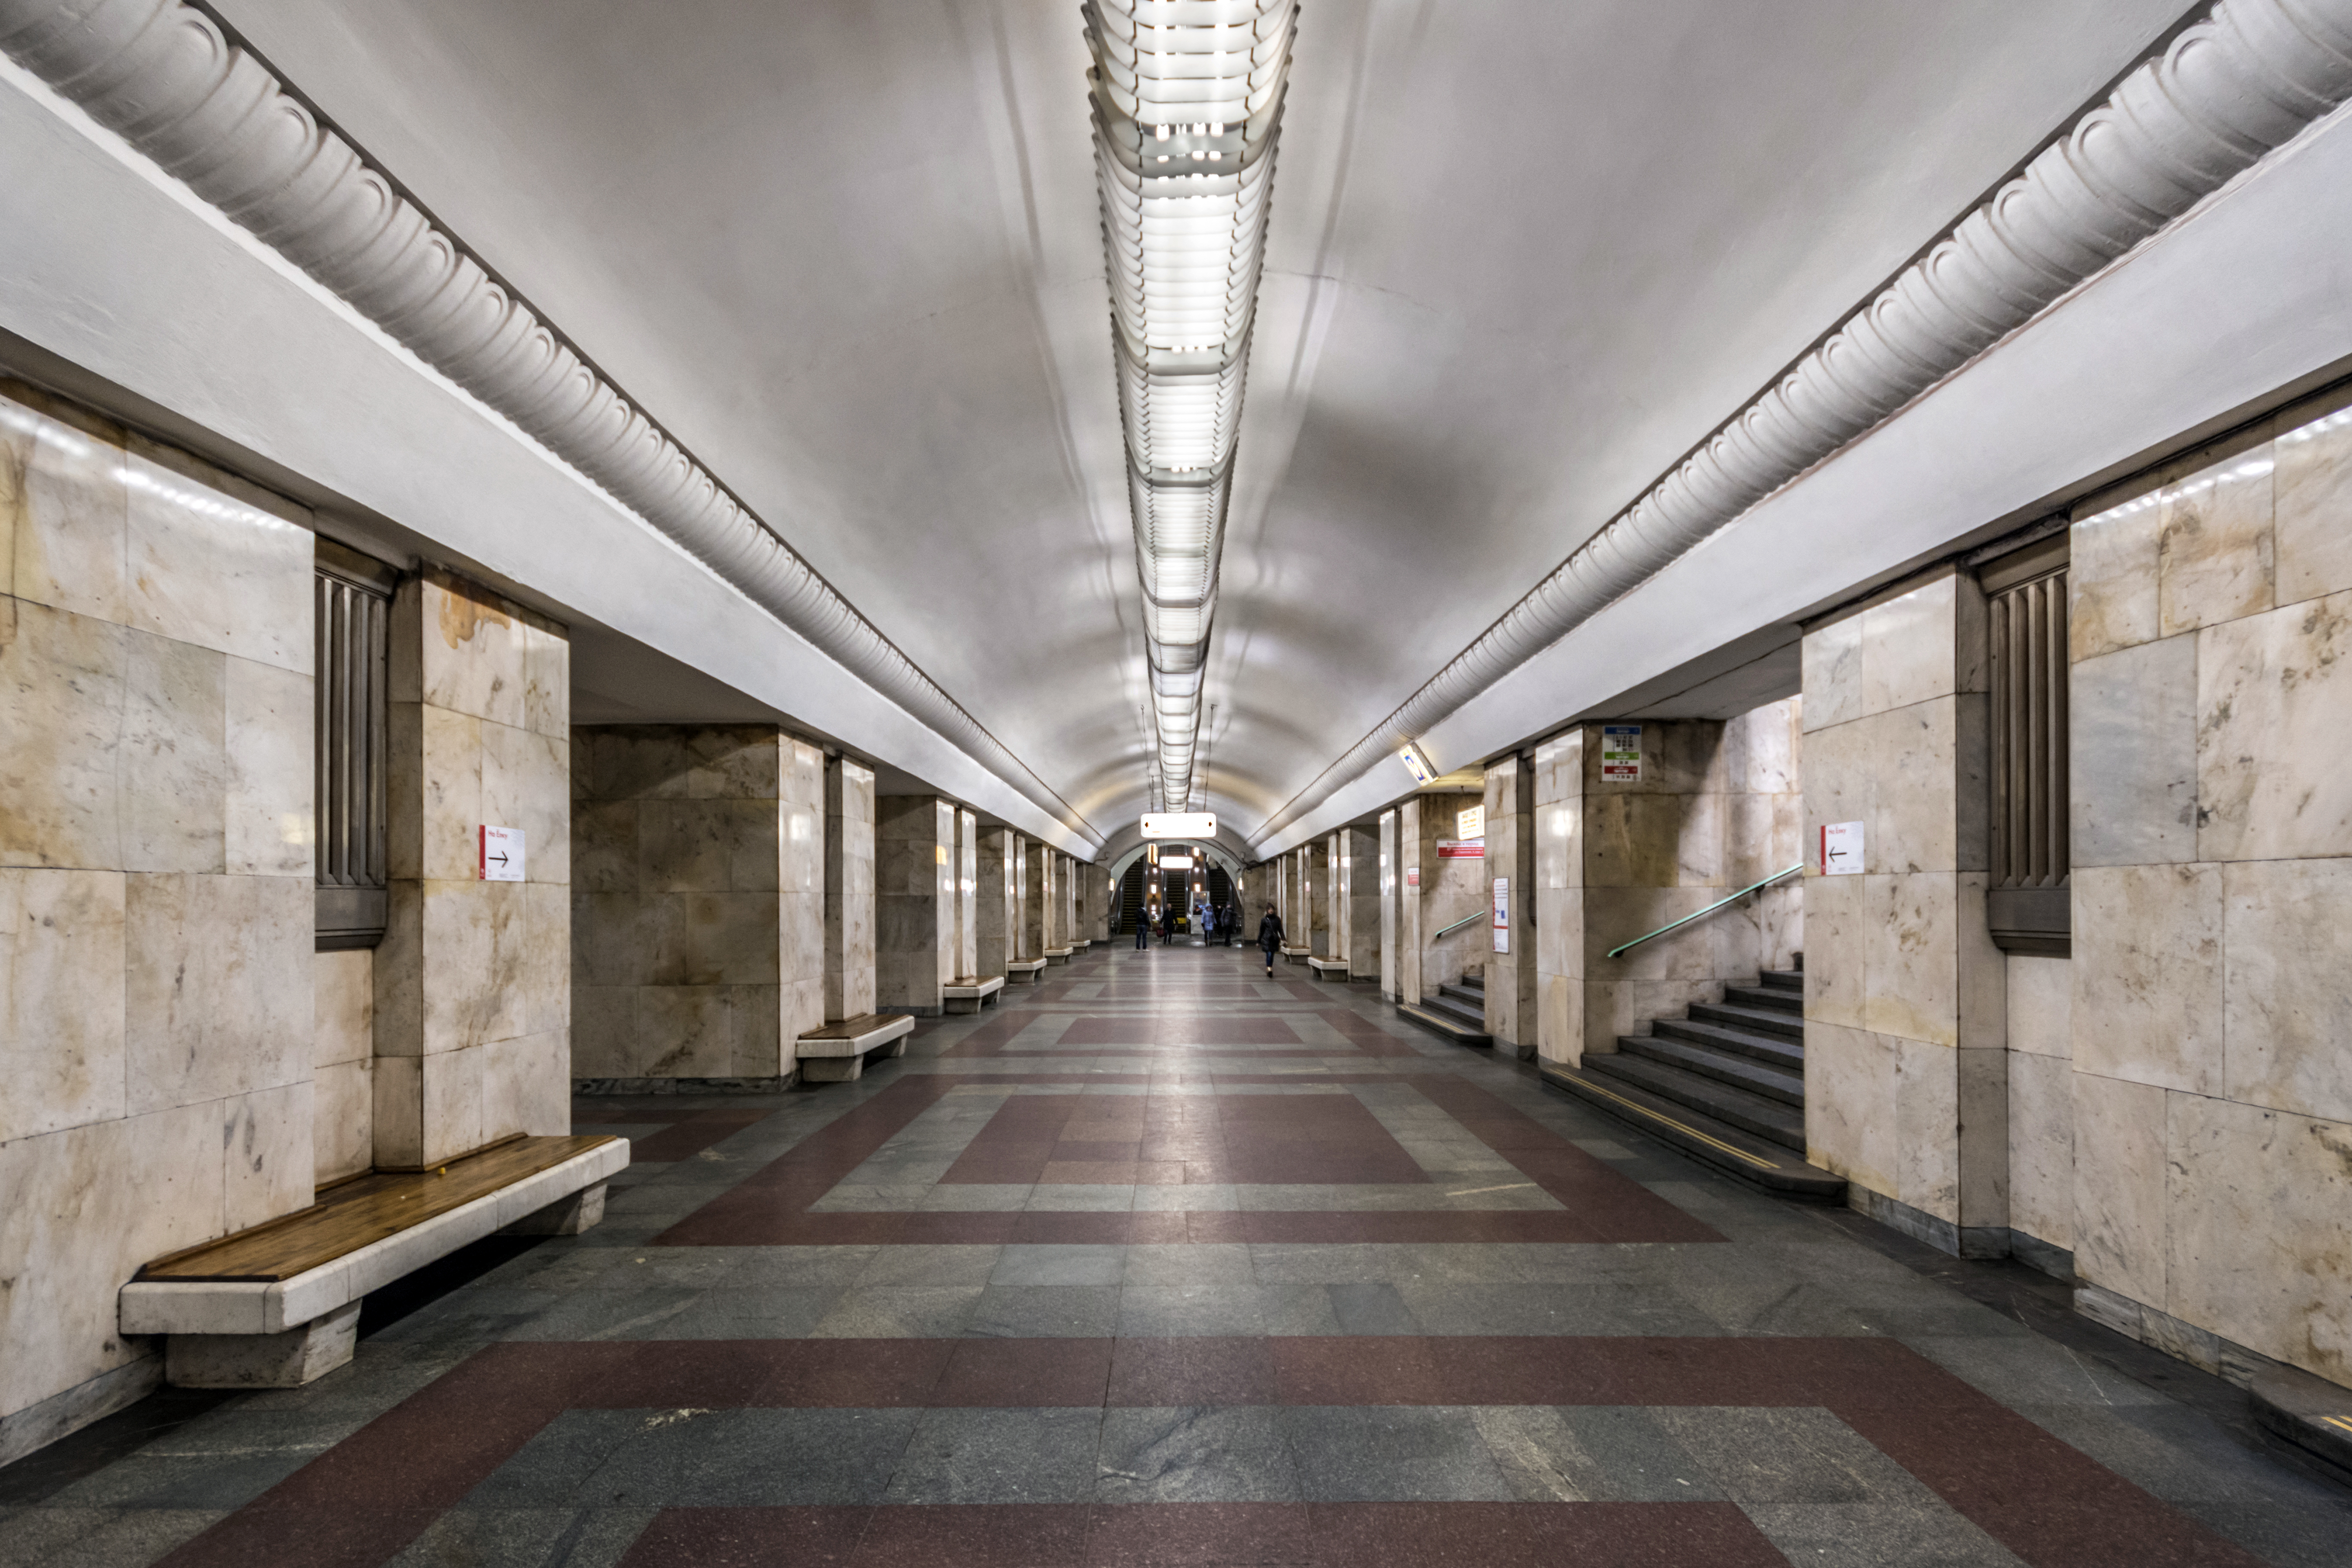 universitet moscow metro wikiwand. Black Bedroom Furniture Sets. Home Design Ideas